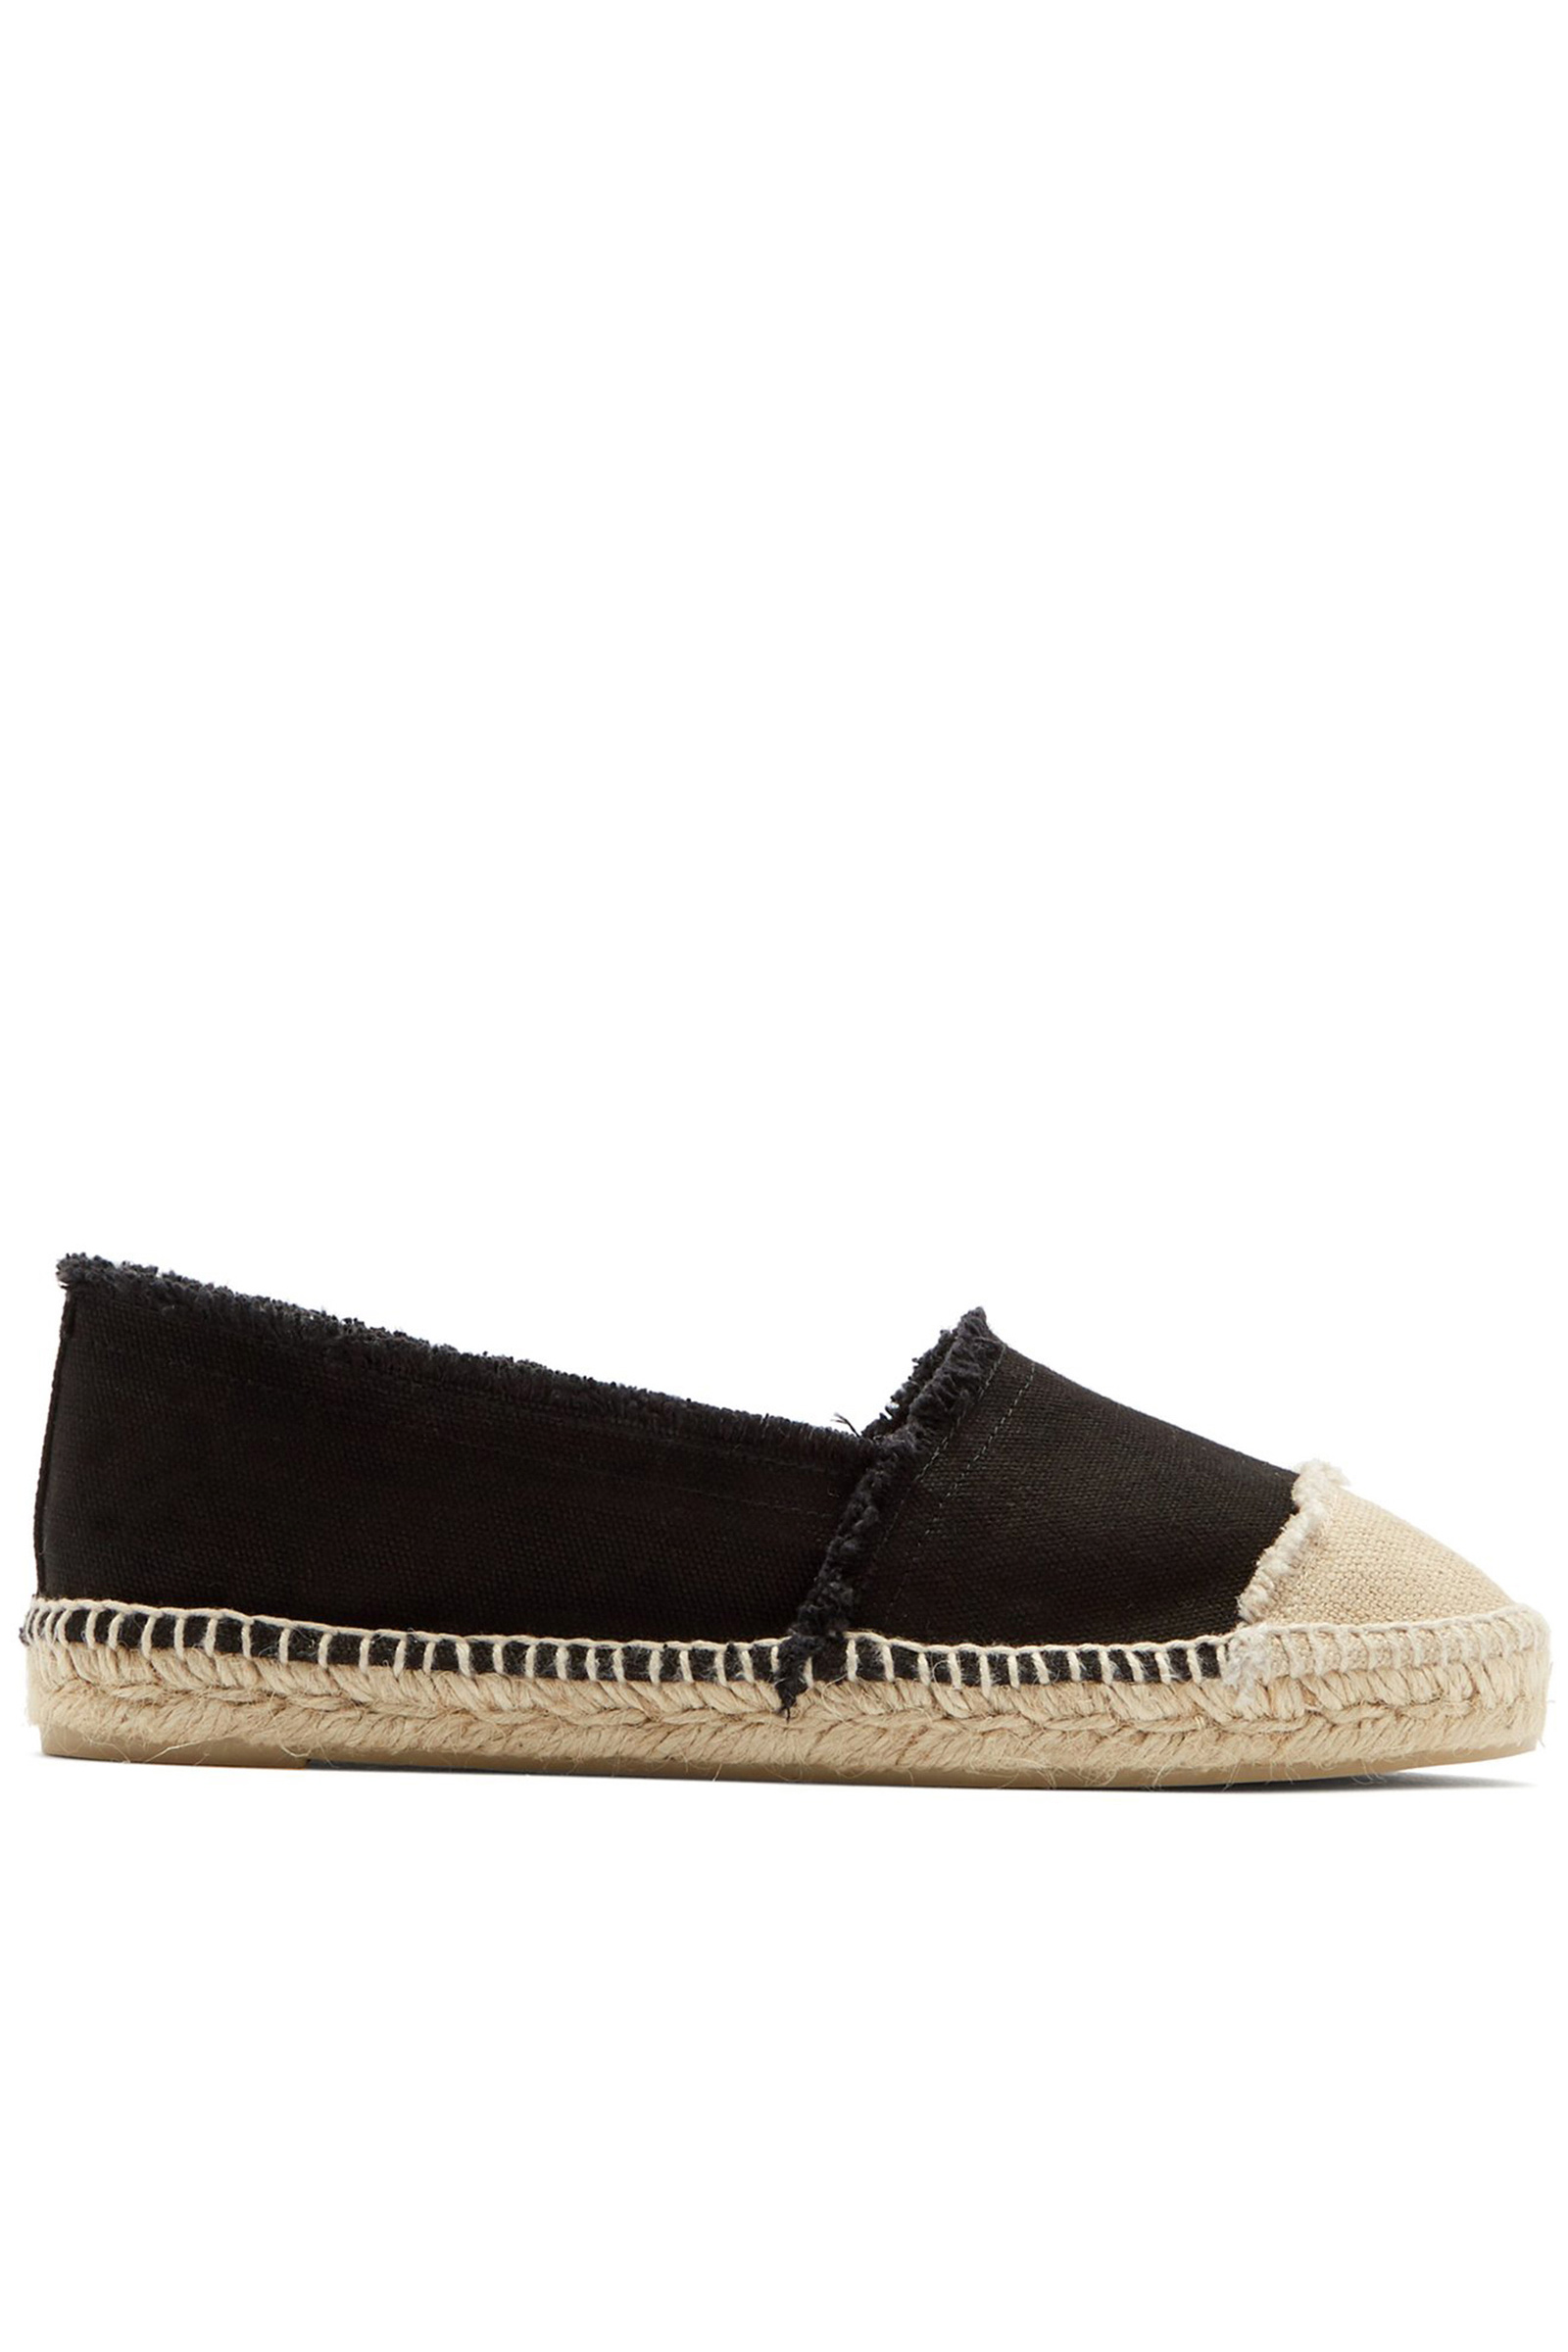 Click to Buy Castaner Espadrilles